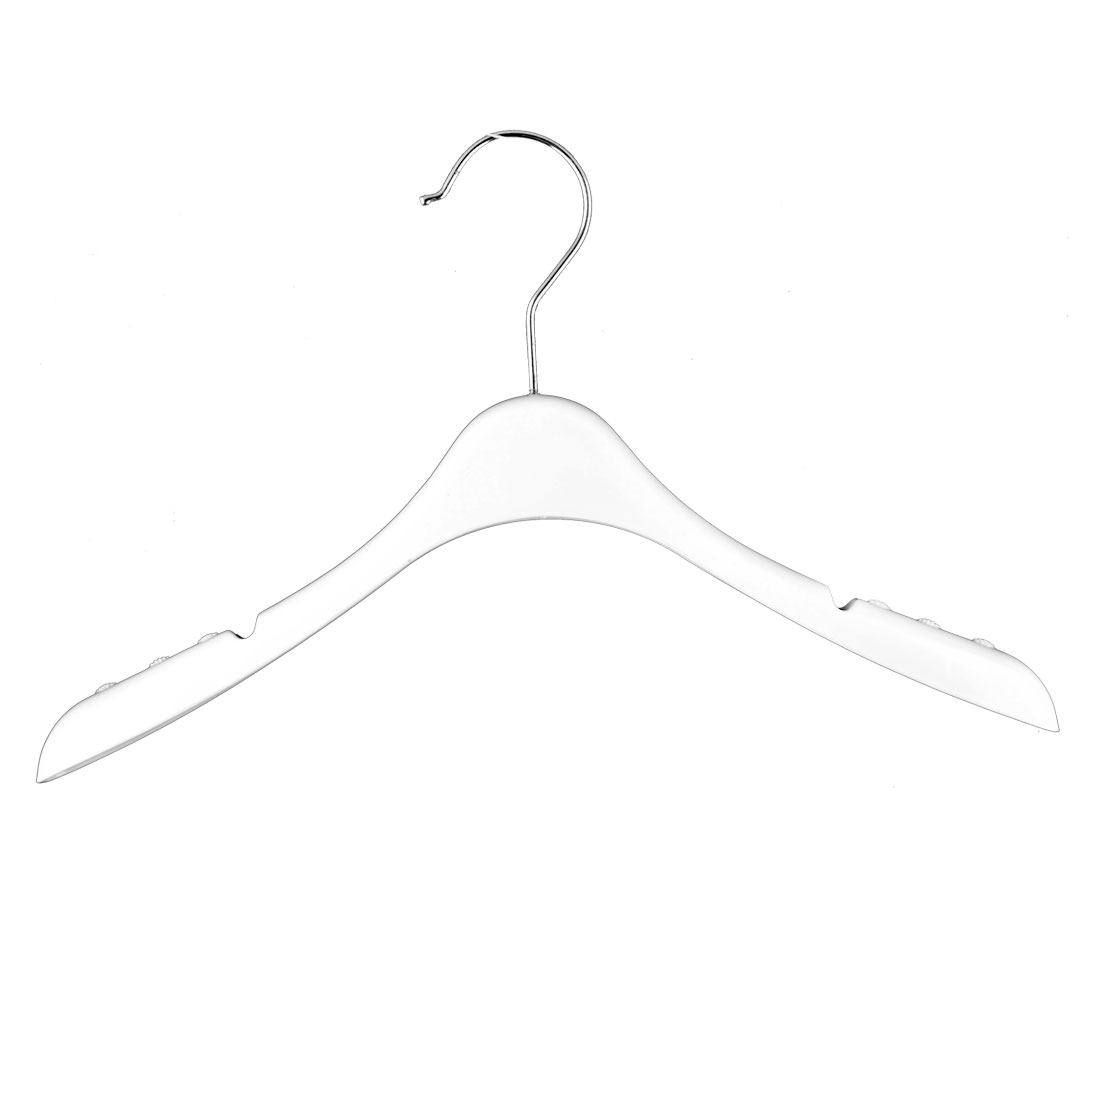 Home Bathroom Balcony Plastic Nonslip Suits Pants Clothes Clothing Hanger Hook White